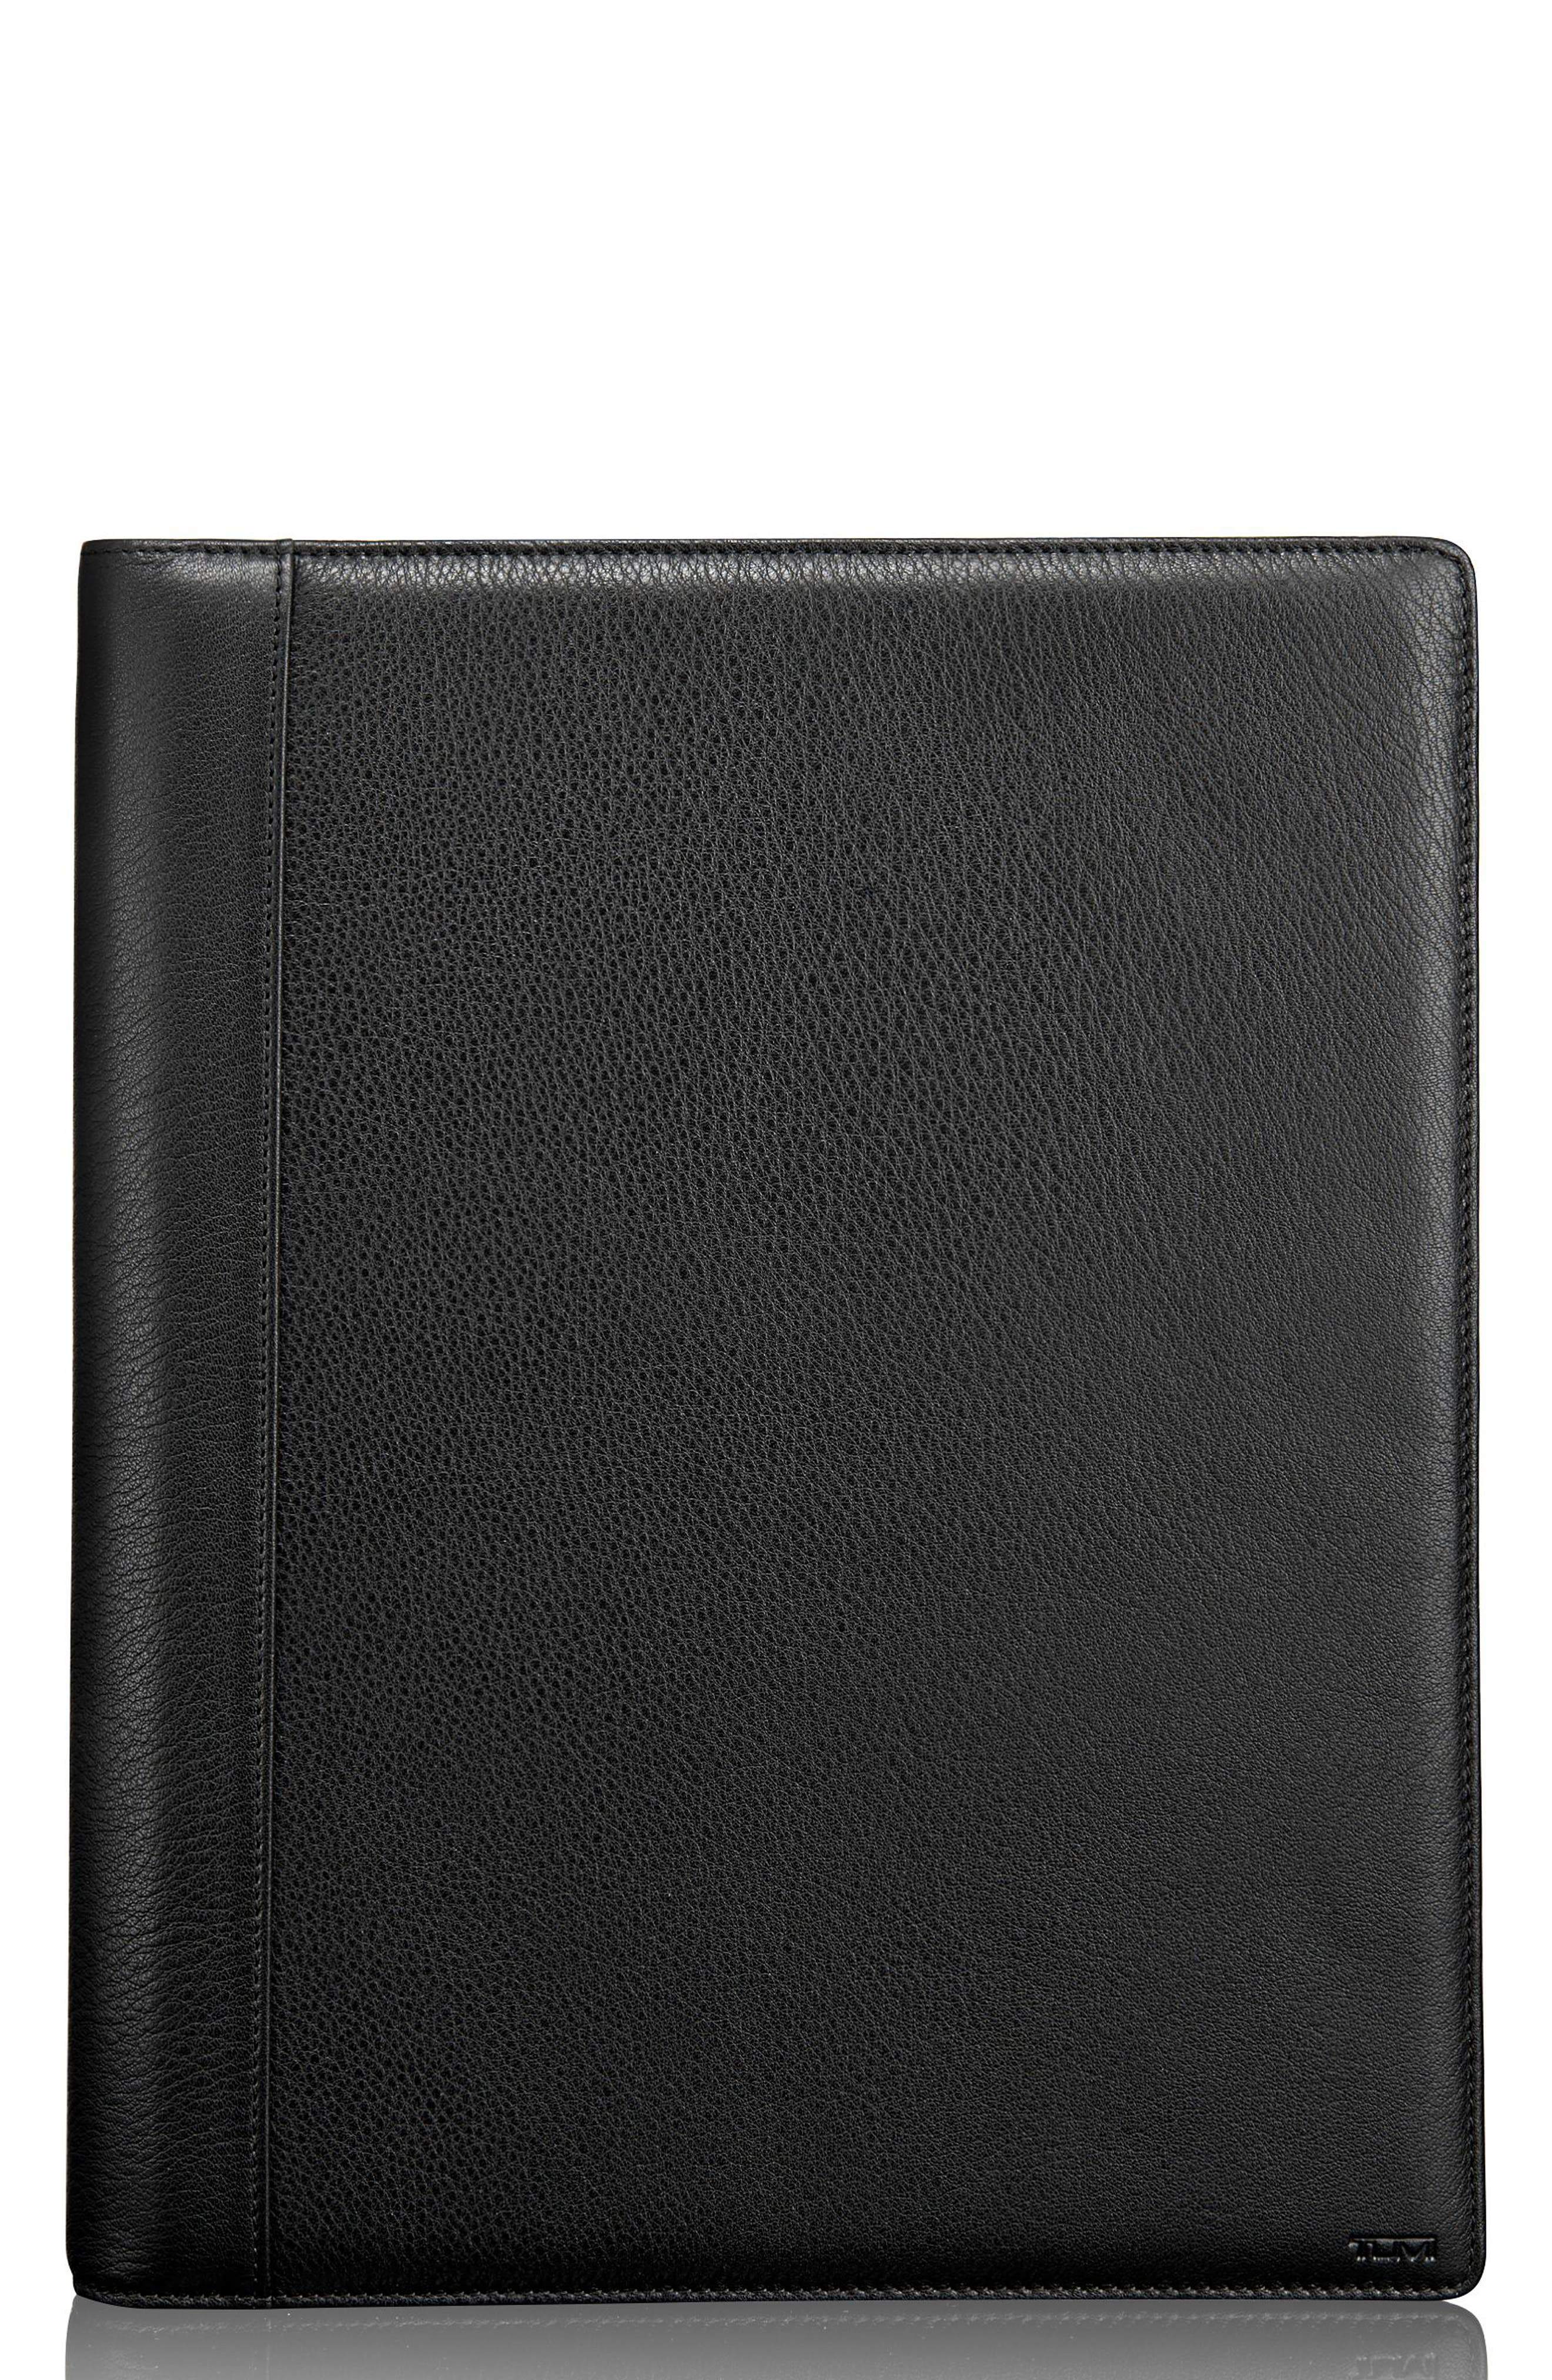 TUMI,                             Leather Letter Pad,                             Main thumbnail 1, color,                             BLACK TEXTURED